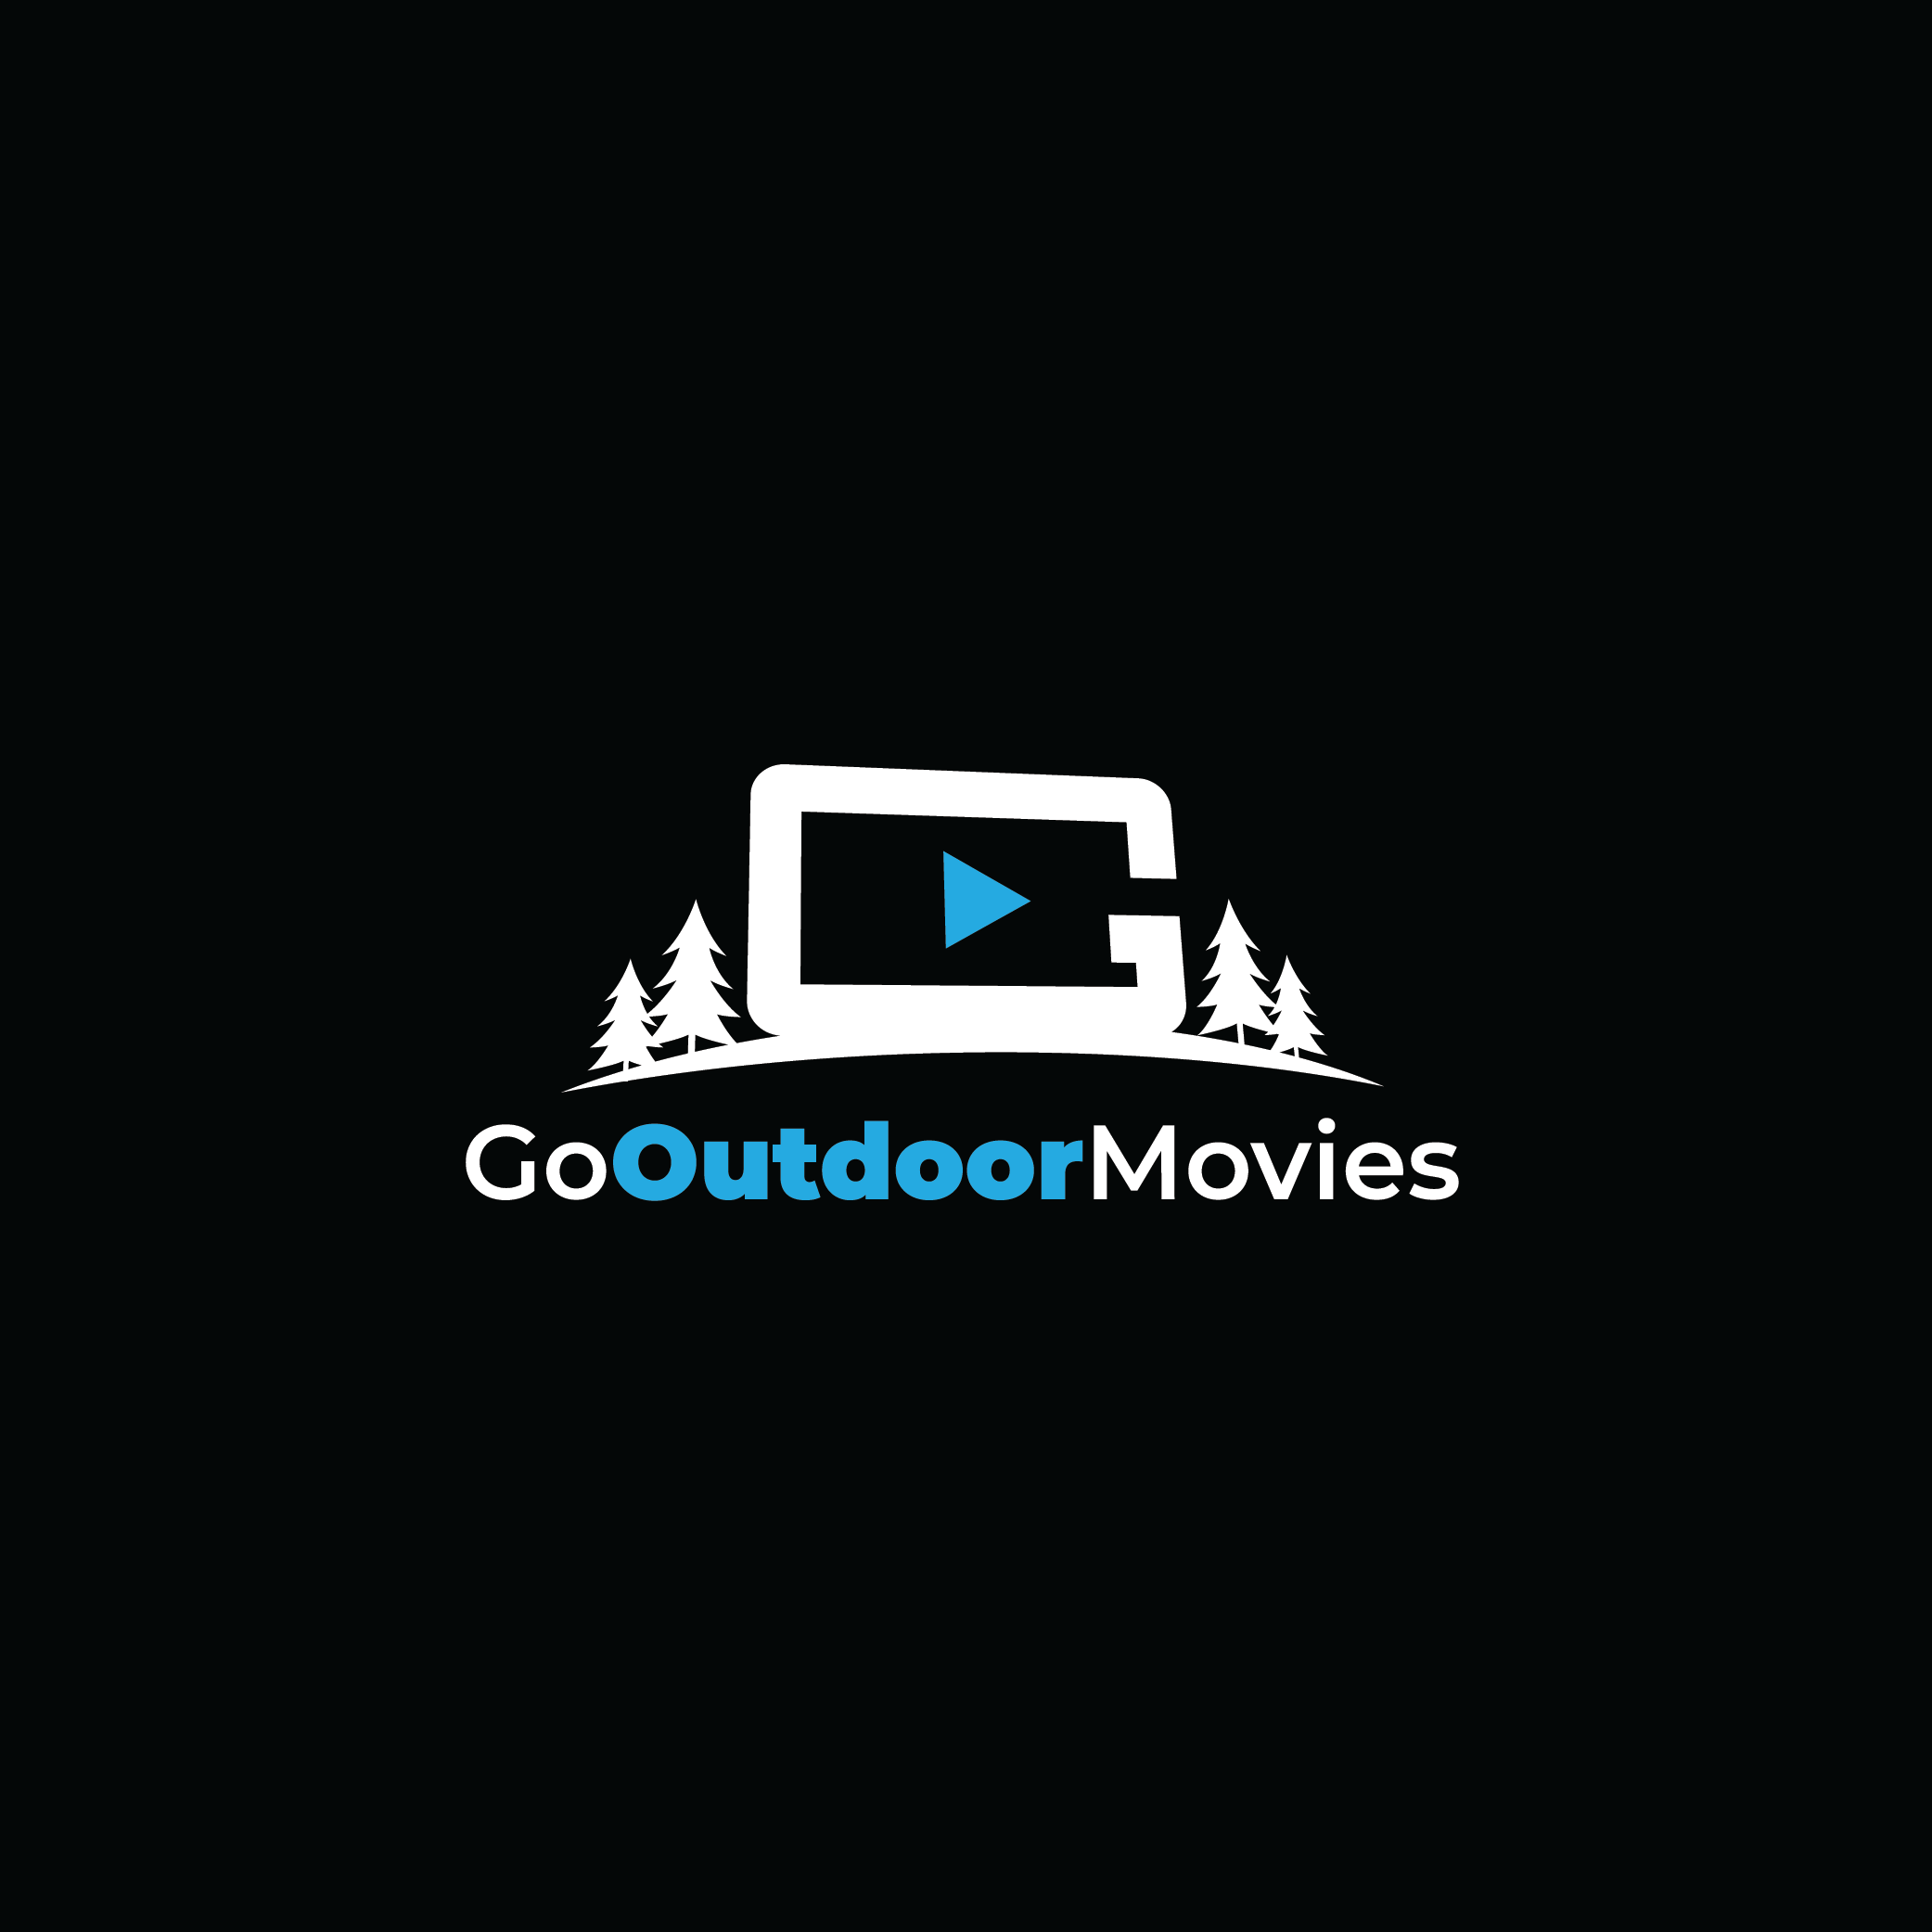 Fun and Simple Logo for an Outdoor Movie Company